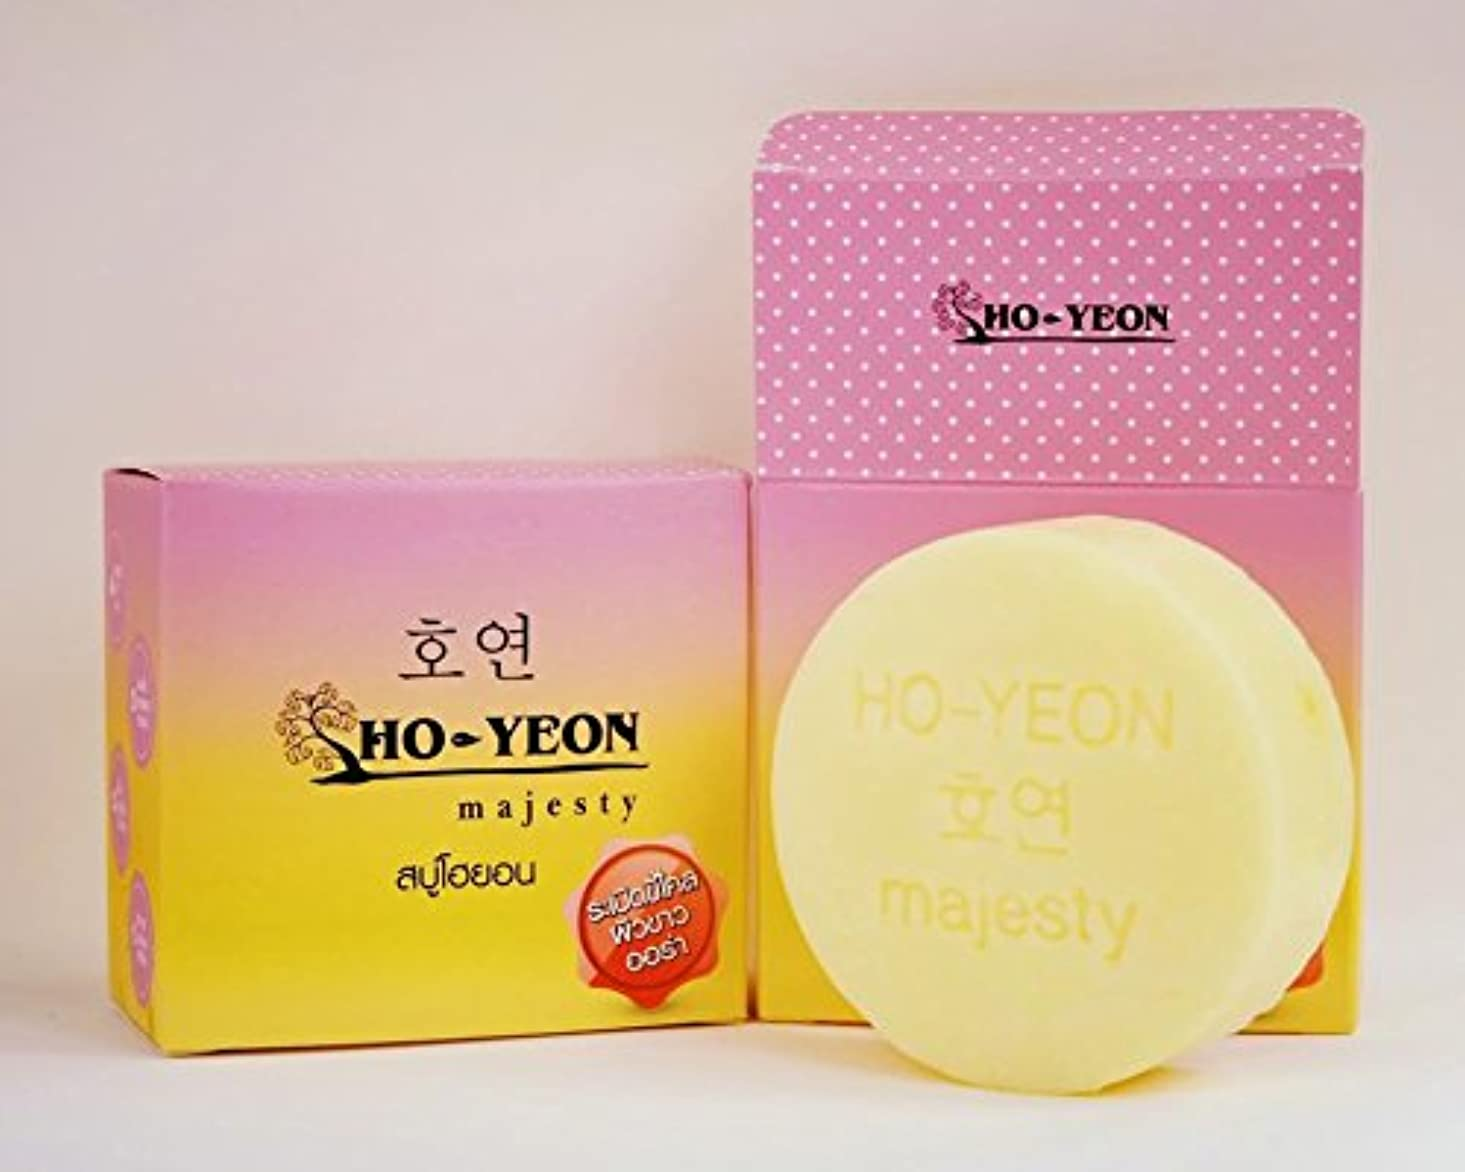 賢明な年次腐敗1 X Natural Herbal Whitening Soap. Soap Yeon Ho-yeon the HO (80 grams) Free shipping